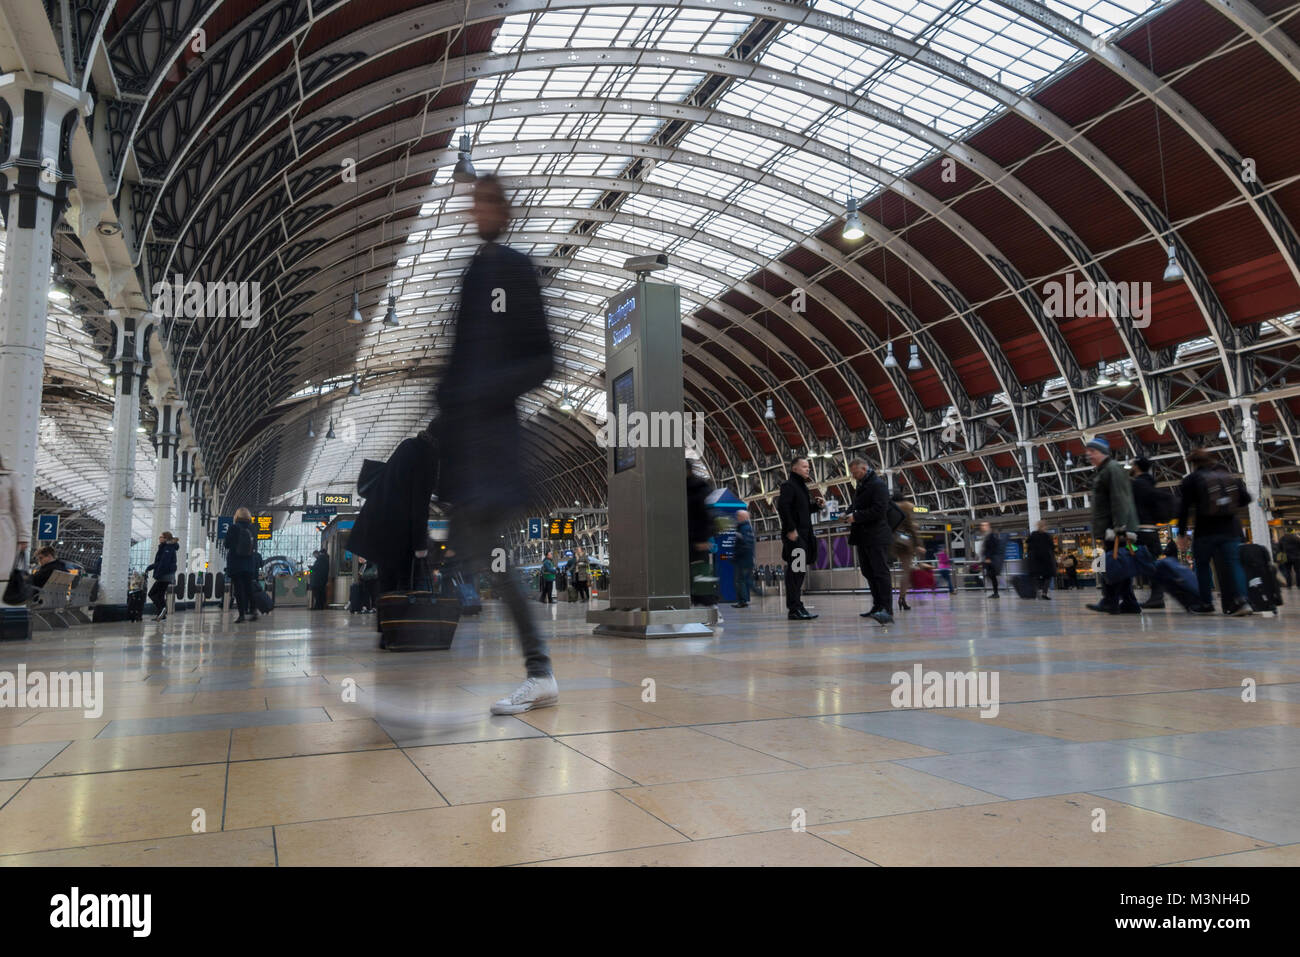 Commuters rushing to catch a train at Paddington station, London - Stock Image